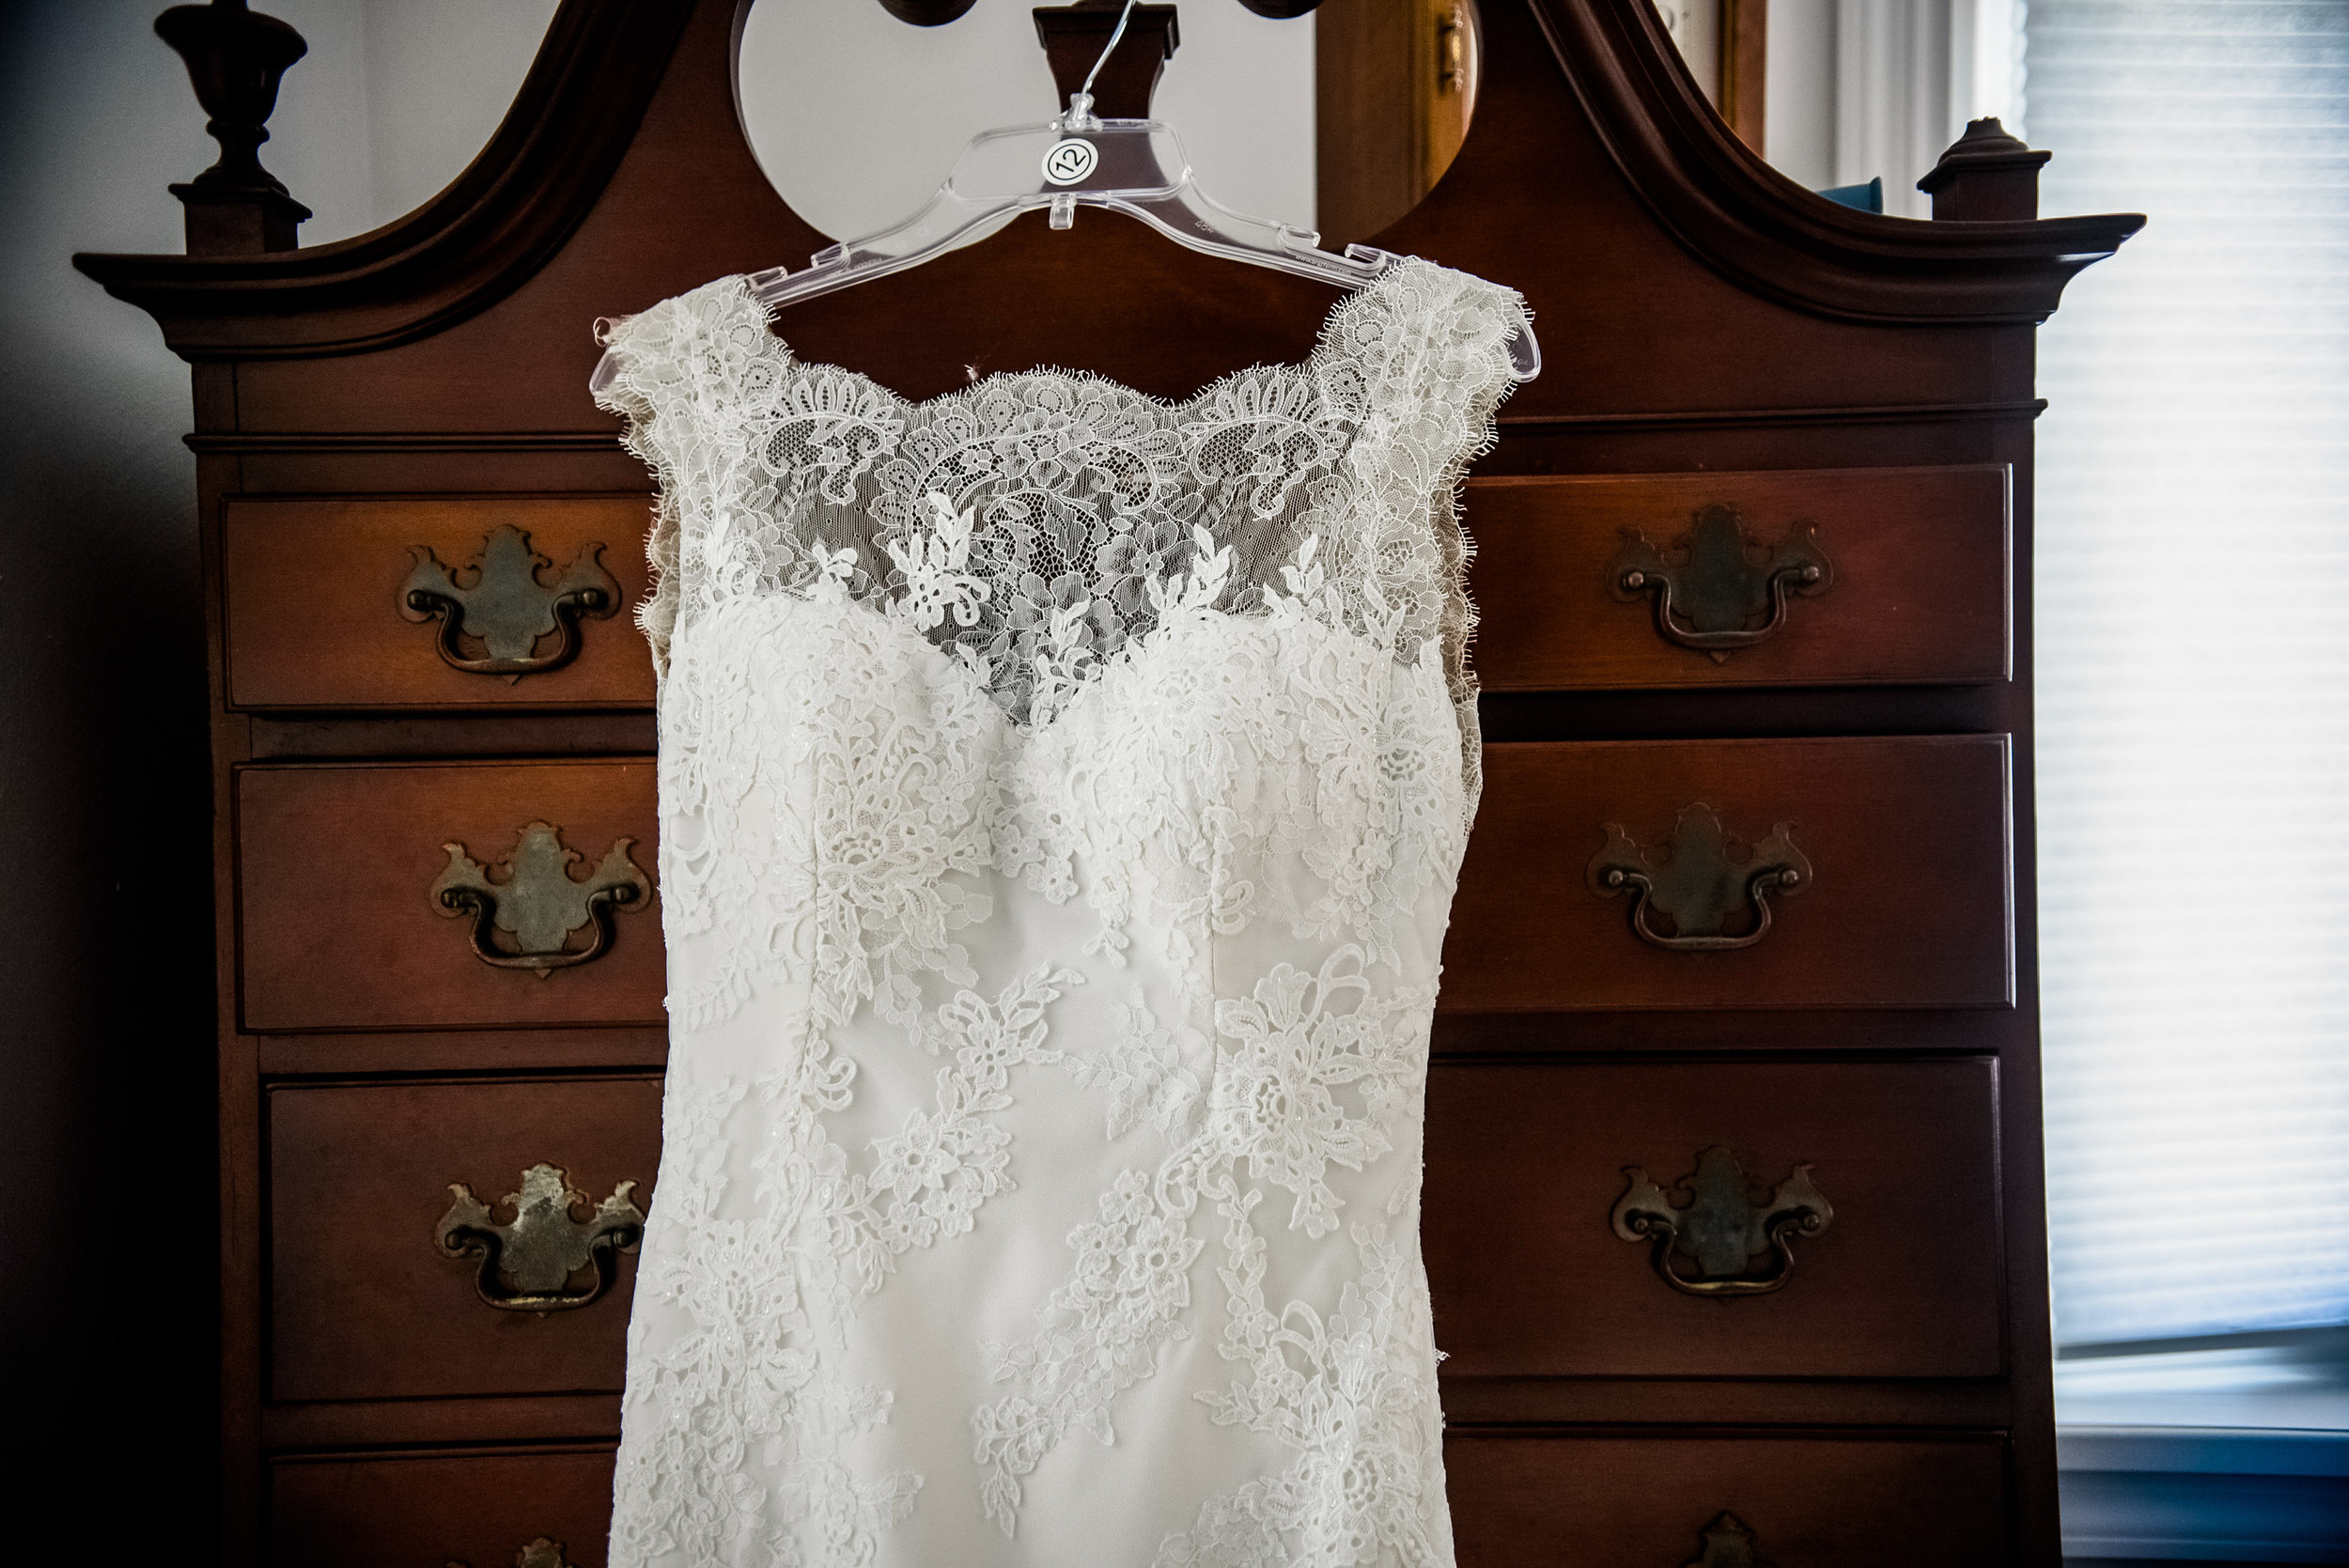 Lace wedding dress for Pittsburgh wedding planned by Exhale Events. Find more inspiration at exhale-events.com!